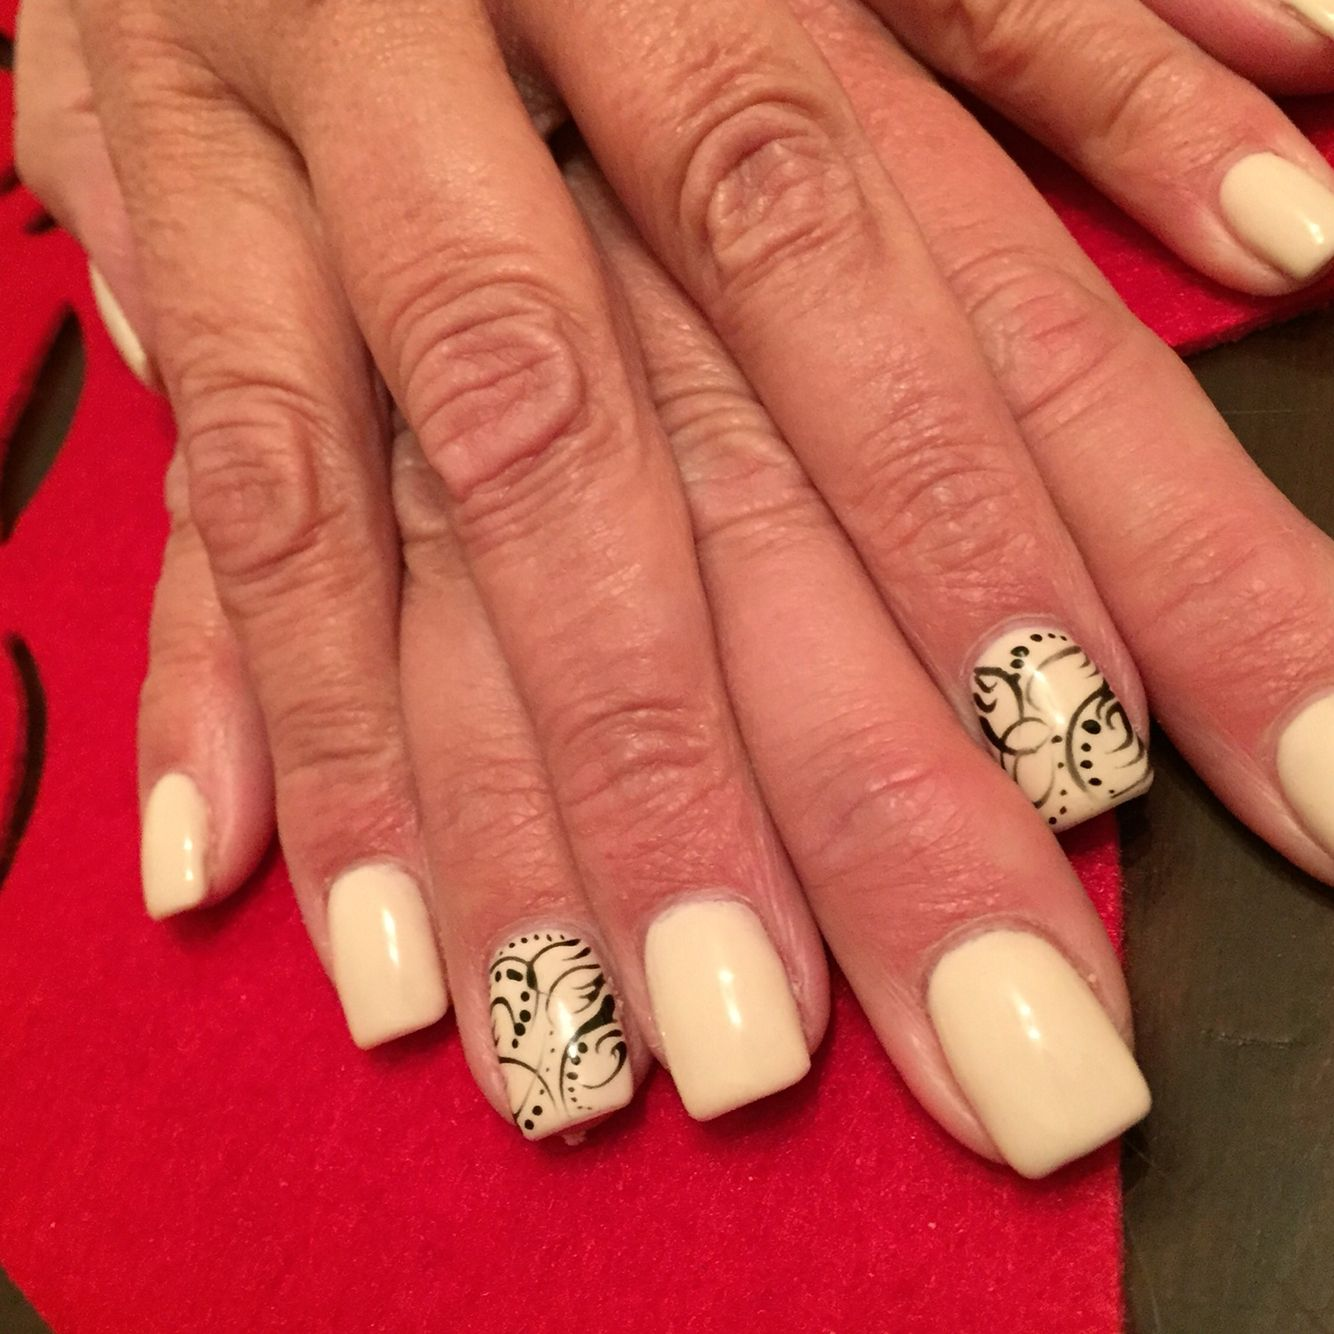 Nails Done At Nail Art Spa Custom Design By Mz Rachel Elgin